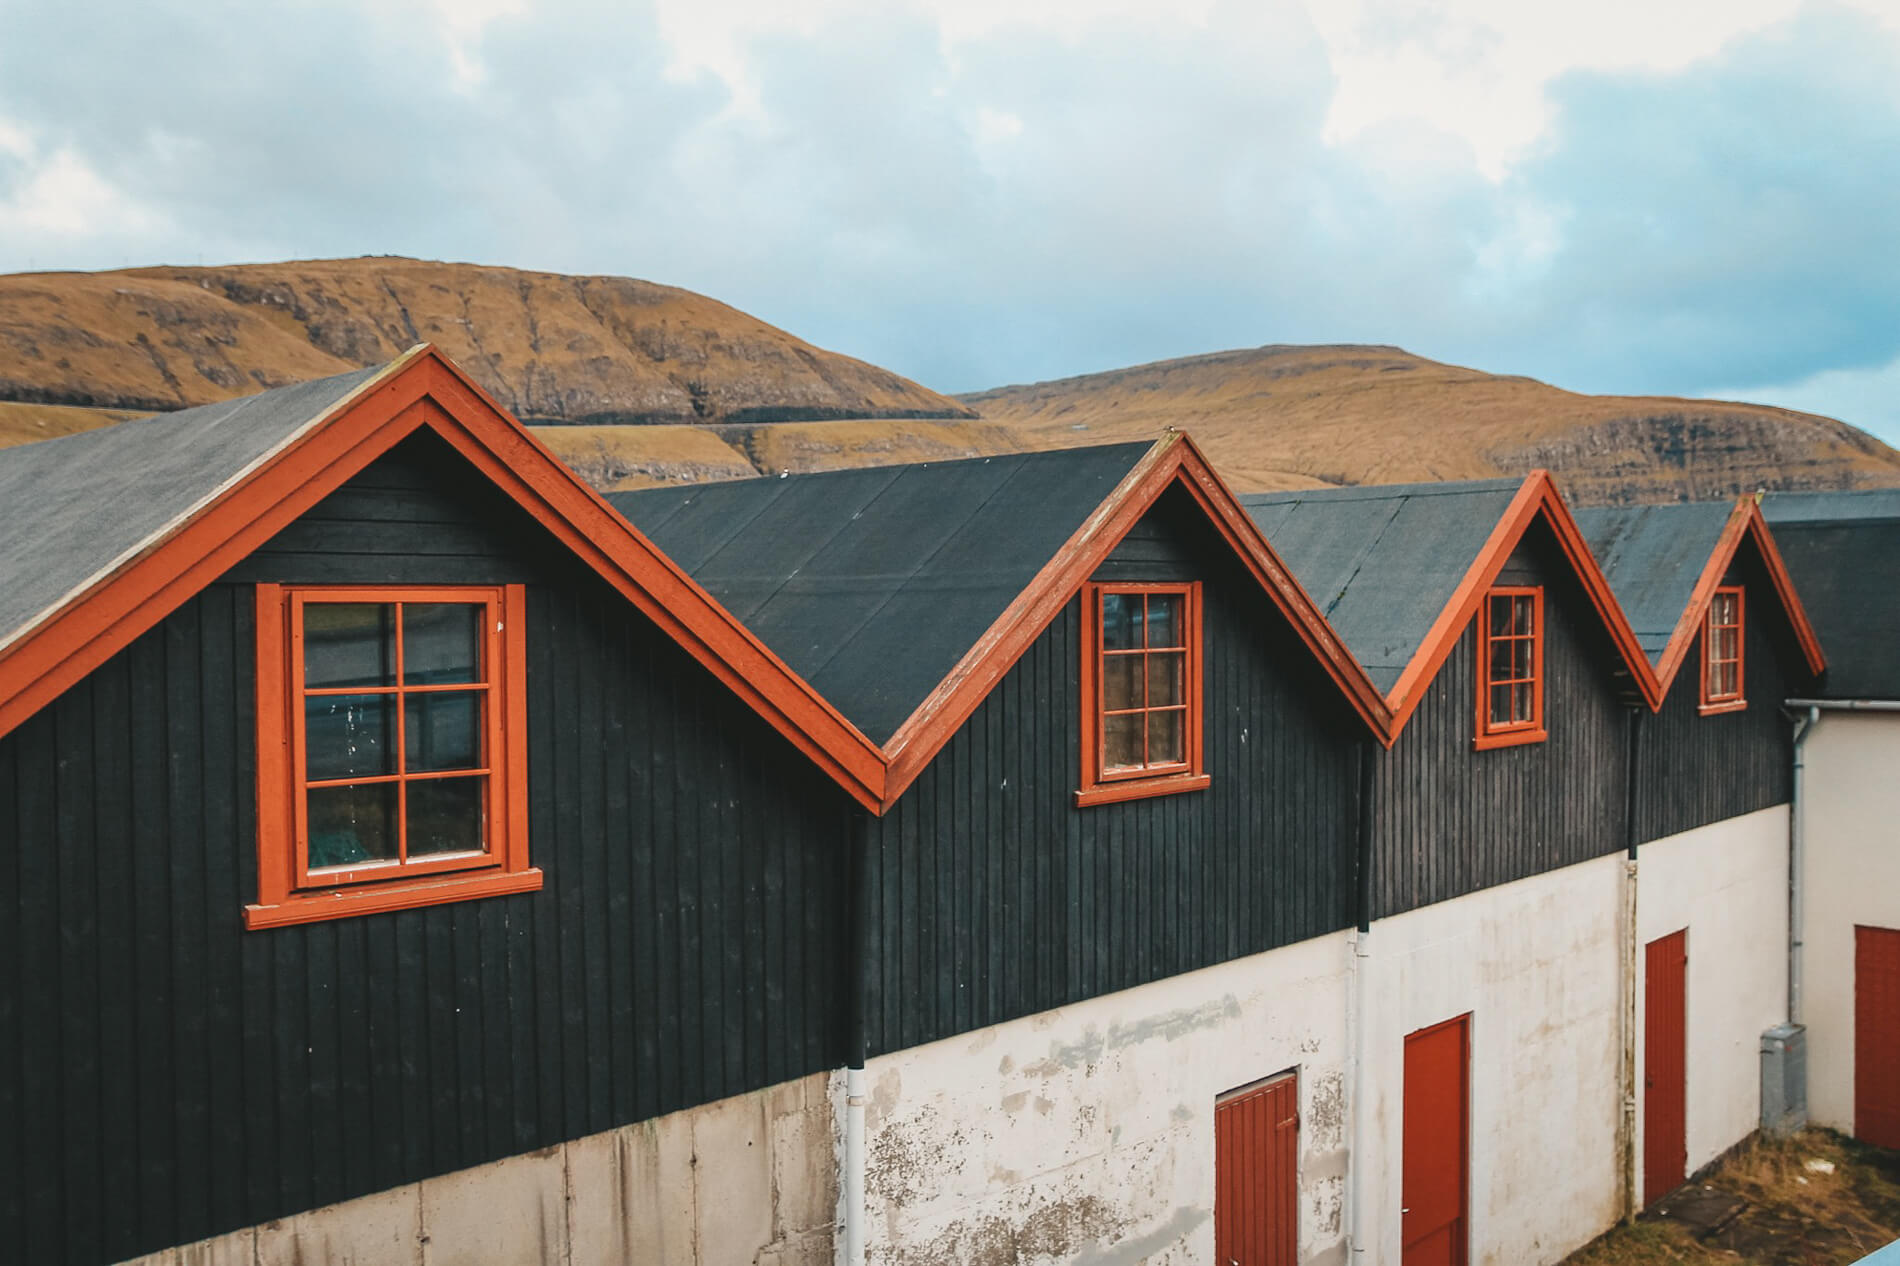 Colourful roofs Vestamanna, faroe islands facts, visit faroe islands